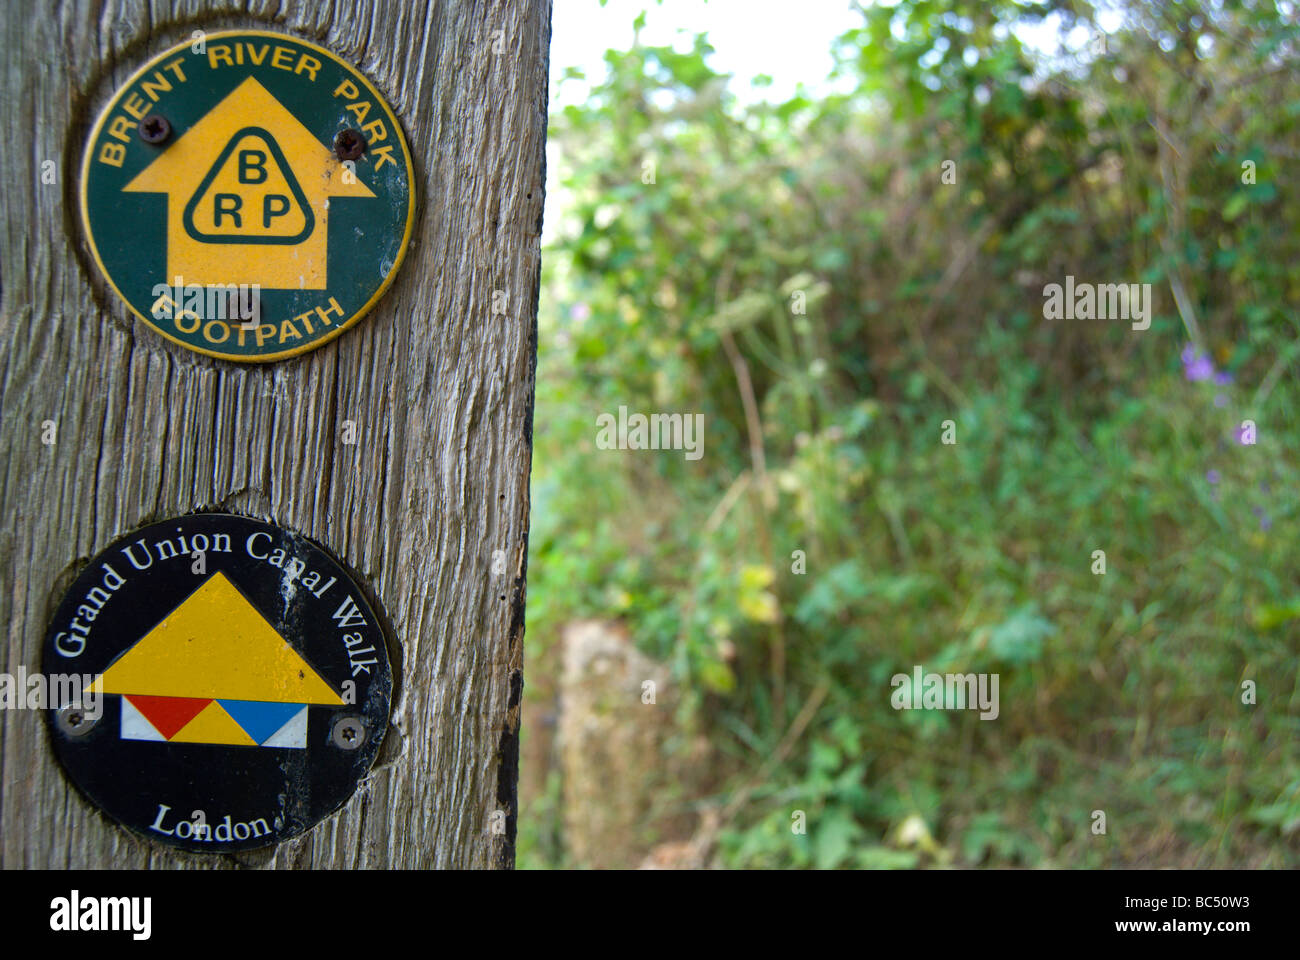 signpost showing directions for the grand union canal walk and the brent river park footpath - Stock Image